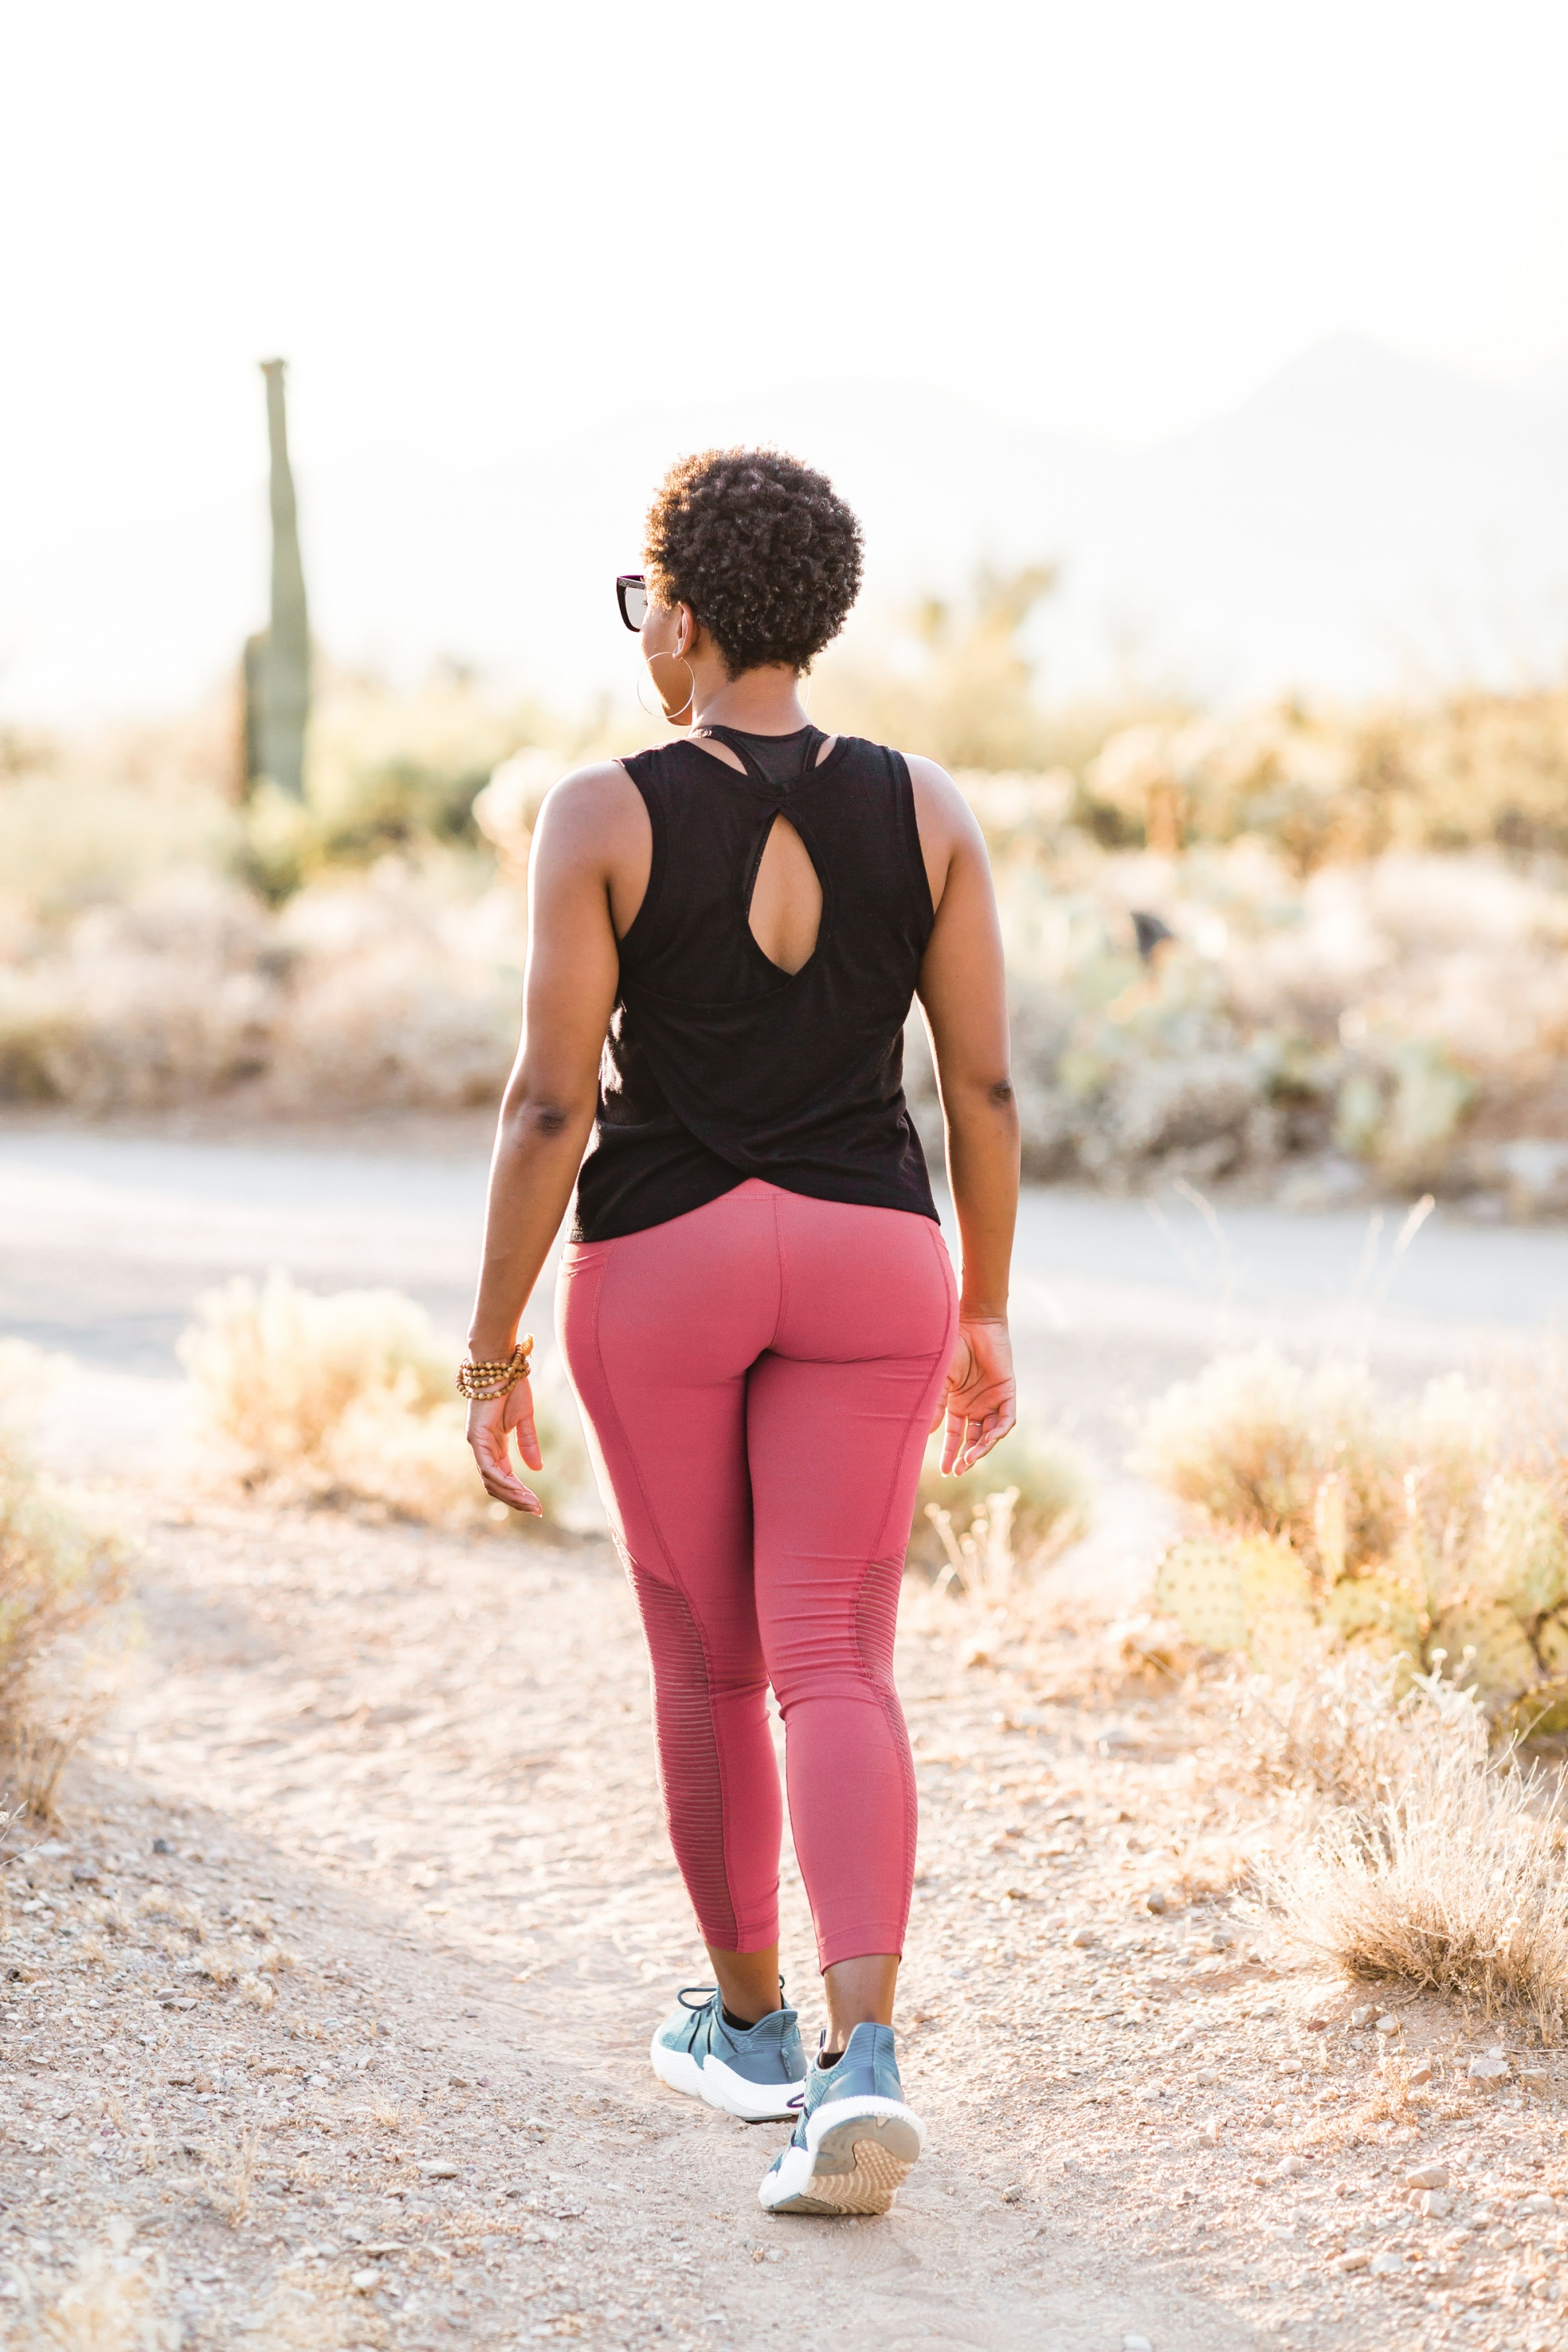 self-care and self-love, black woman from behind in black shirt and pink leggings walking through desert